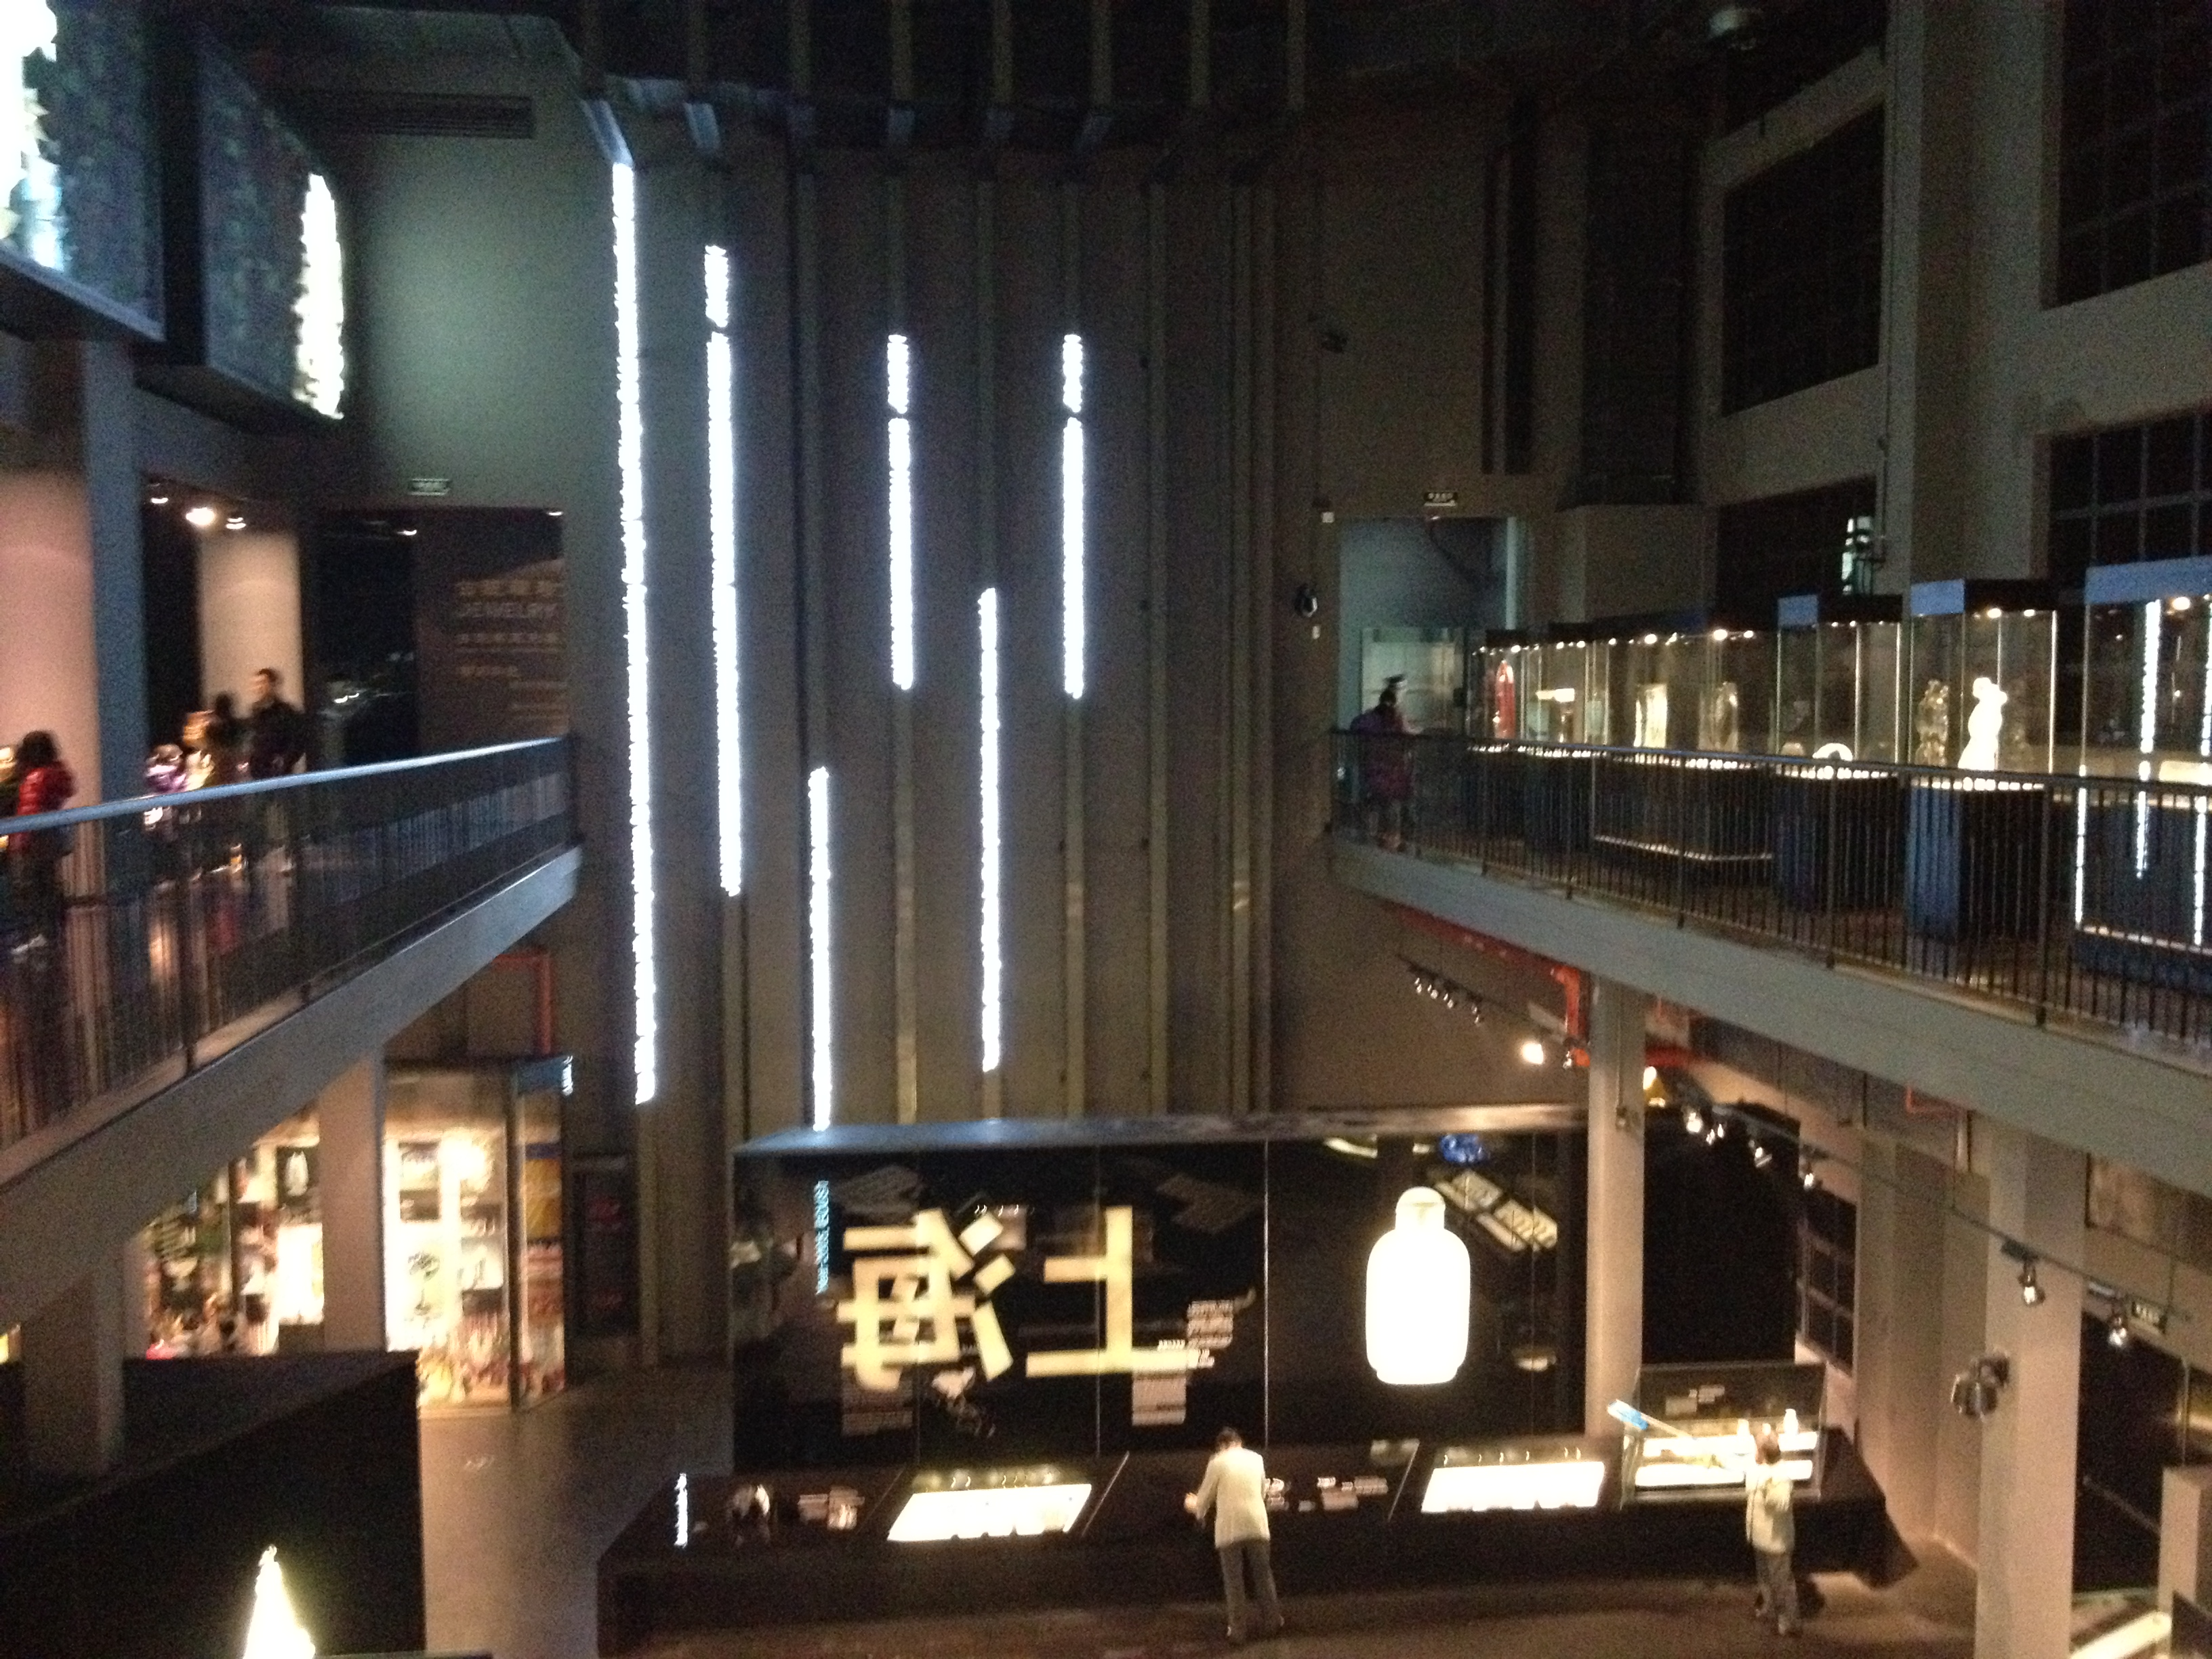 Inside the main museum. Electronic LED information pipes at the center there. Pretty cool.